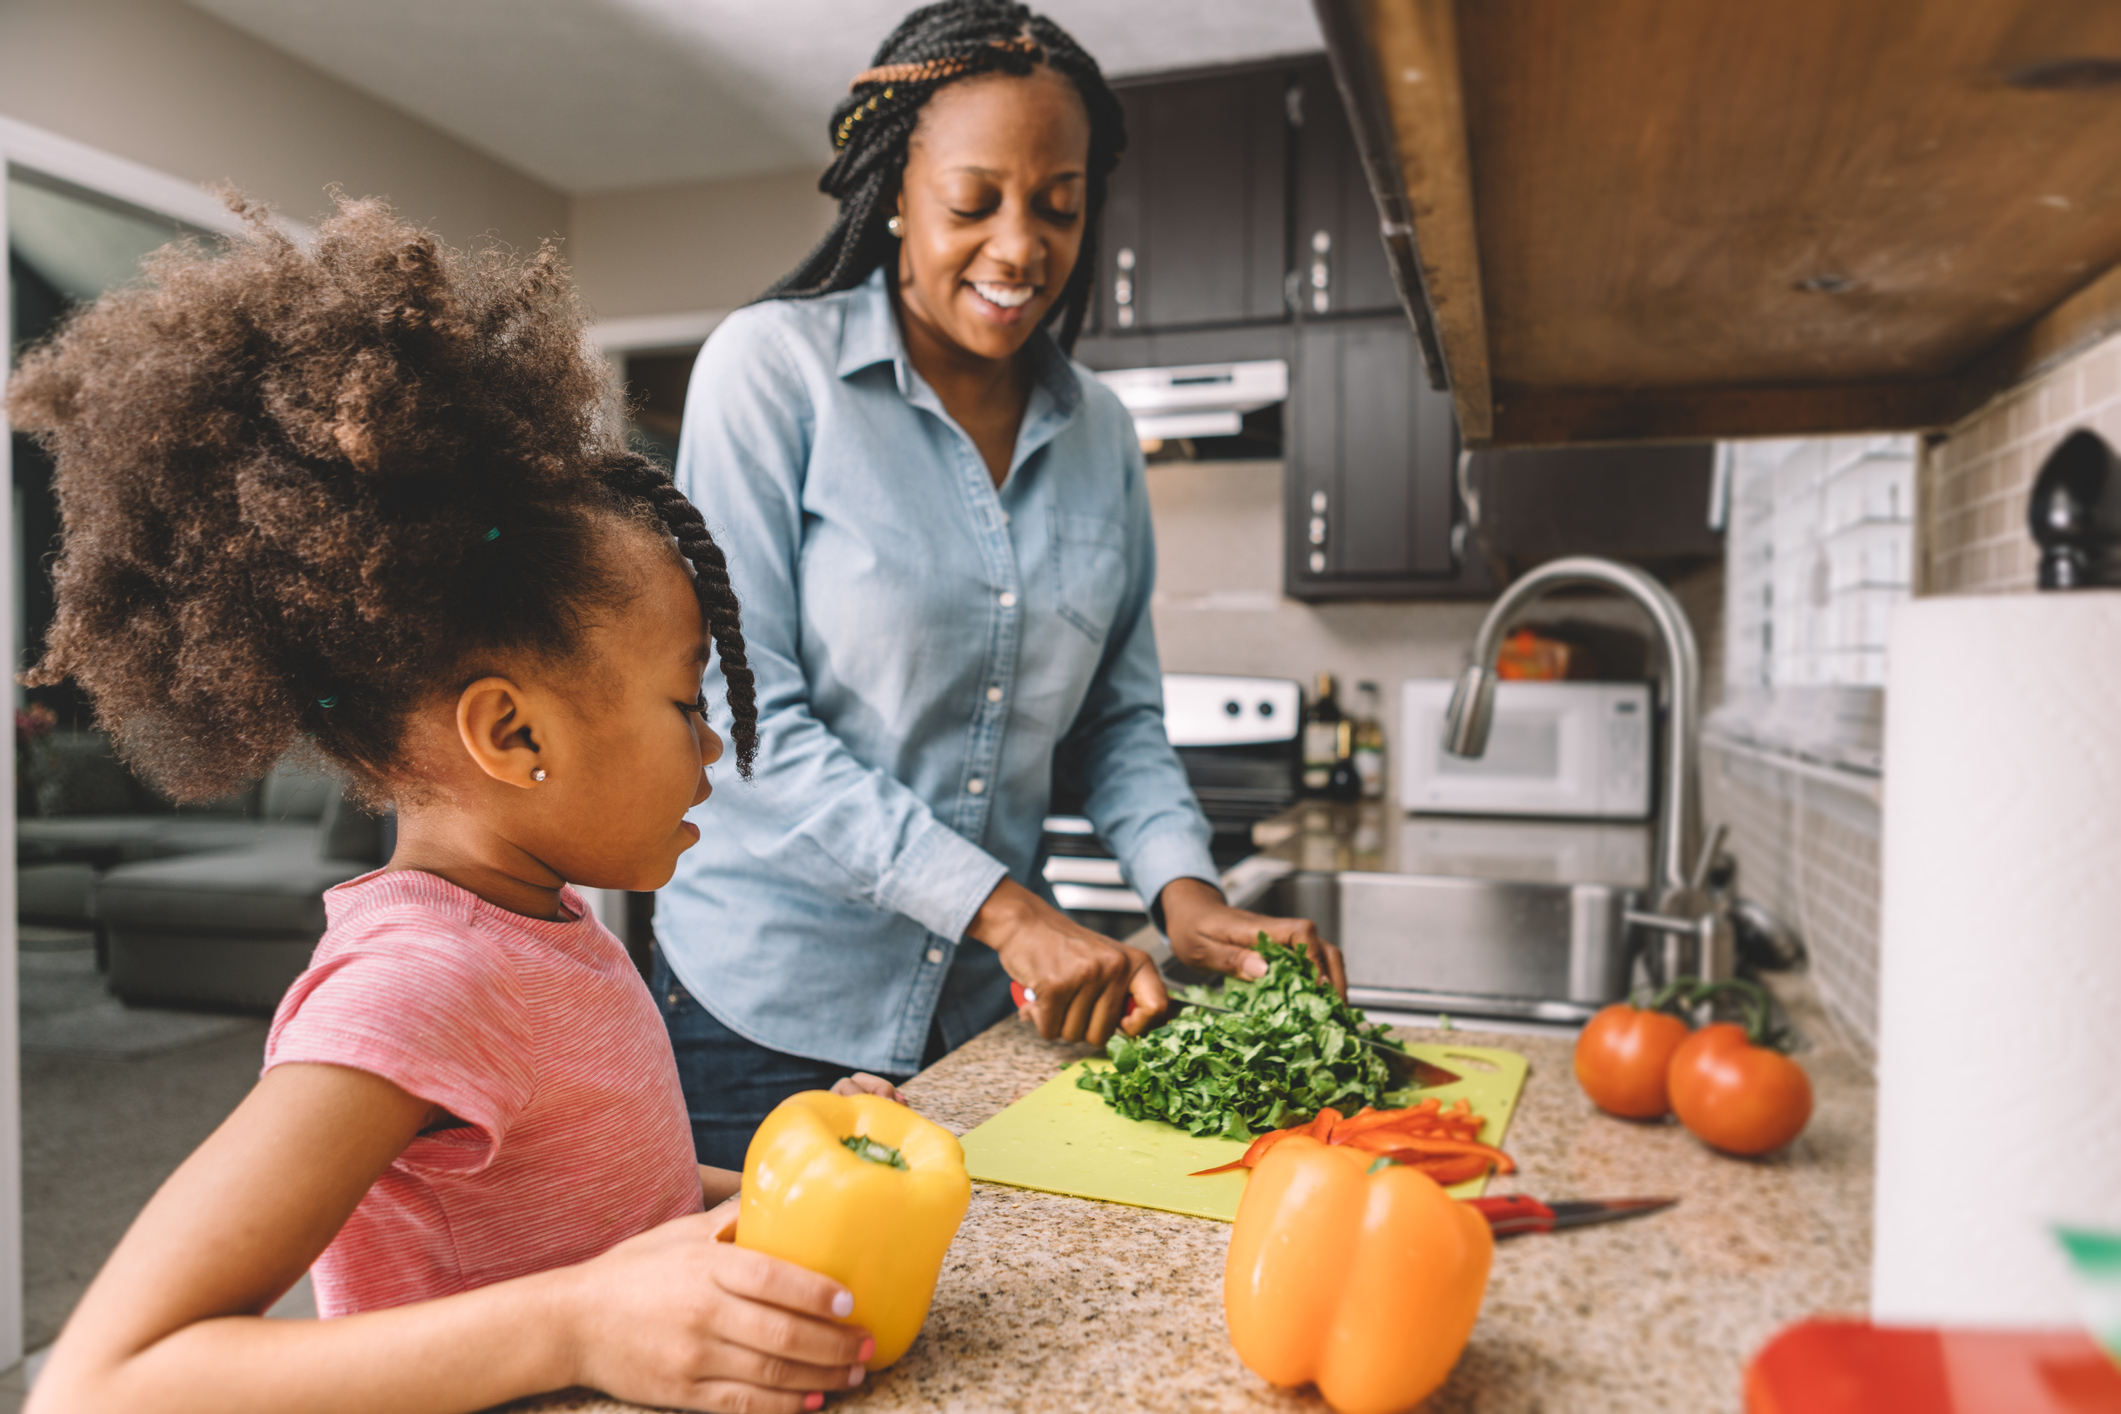 Make Sure Your Health is Secure: Taking Time for Self-Care with Diabetes